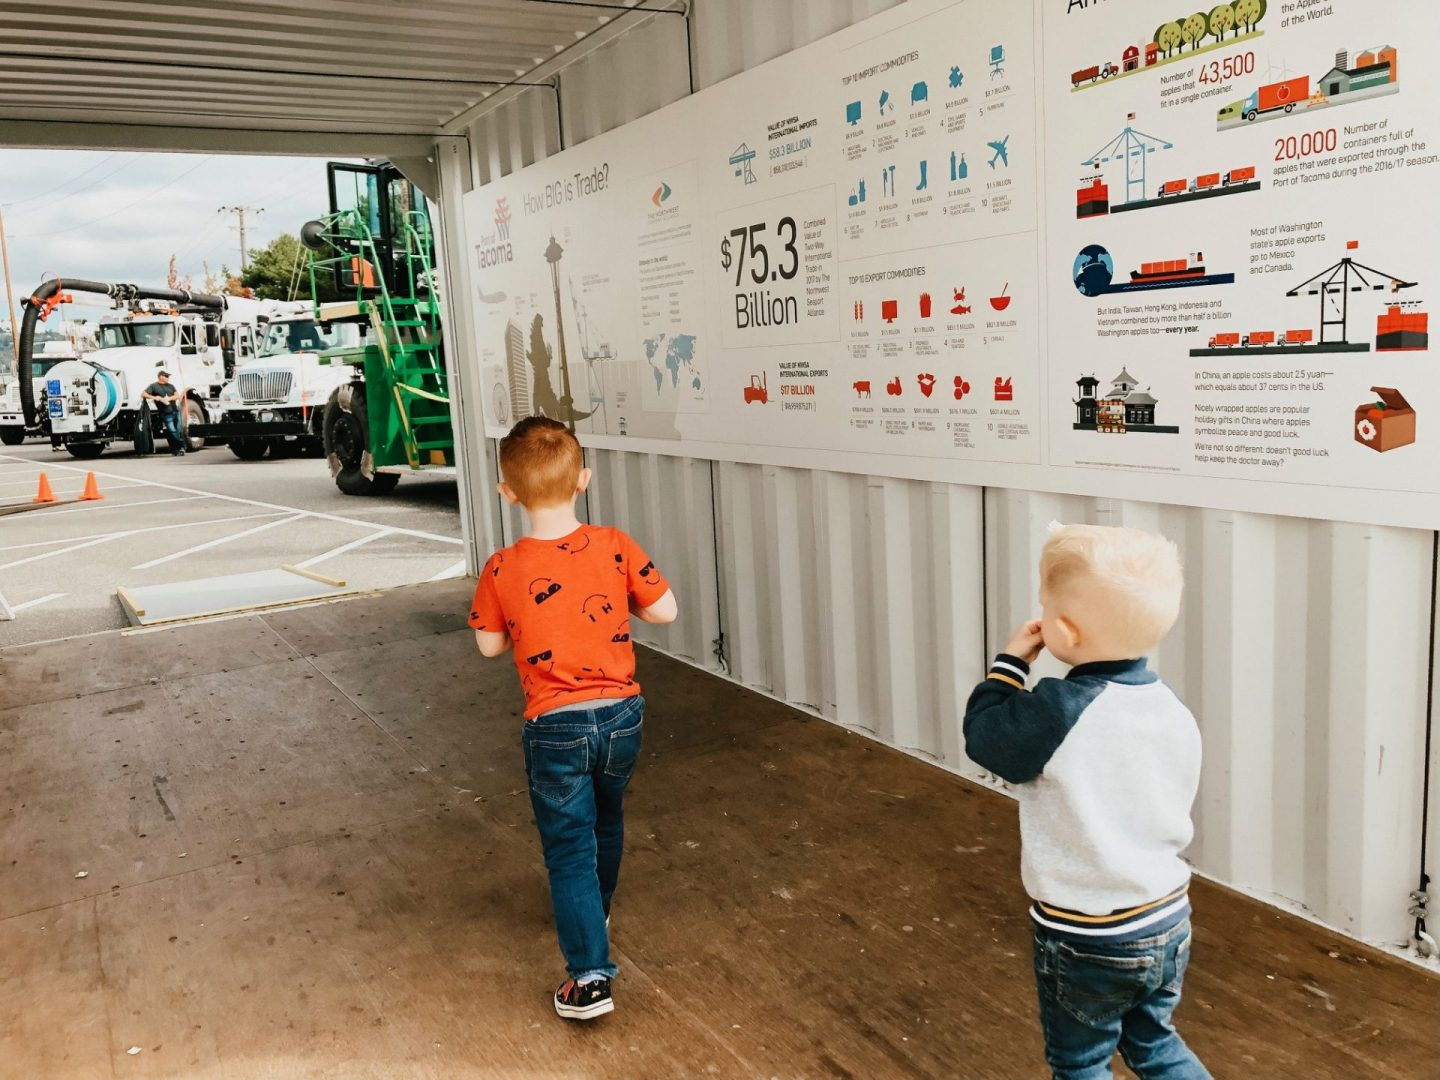 touch-a-truck at the port of tacoma